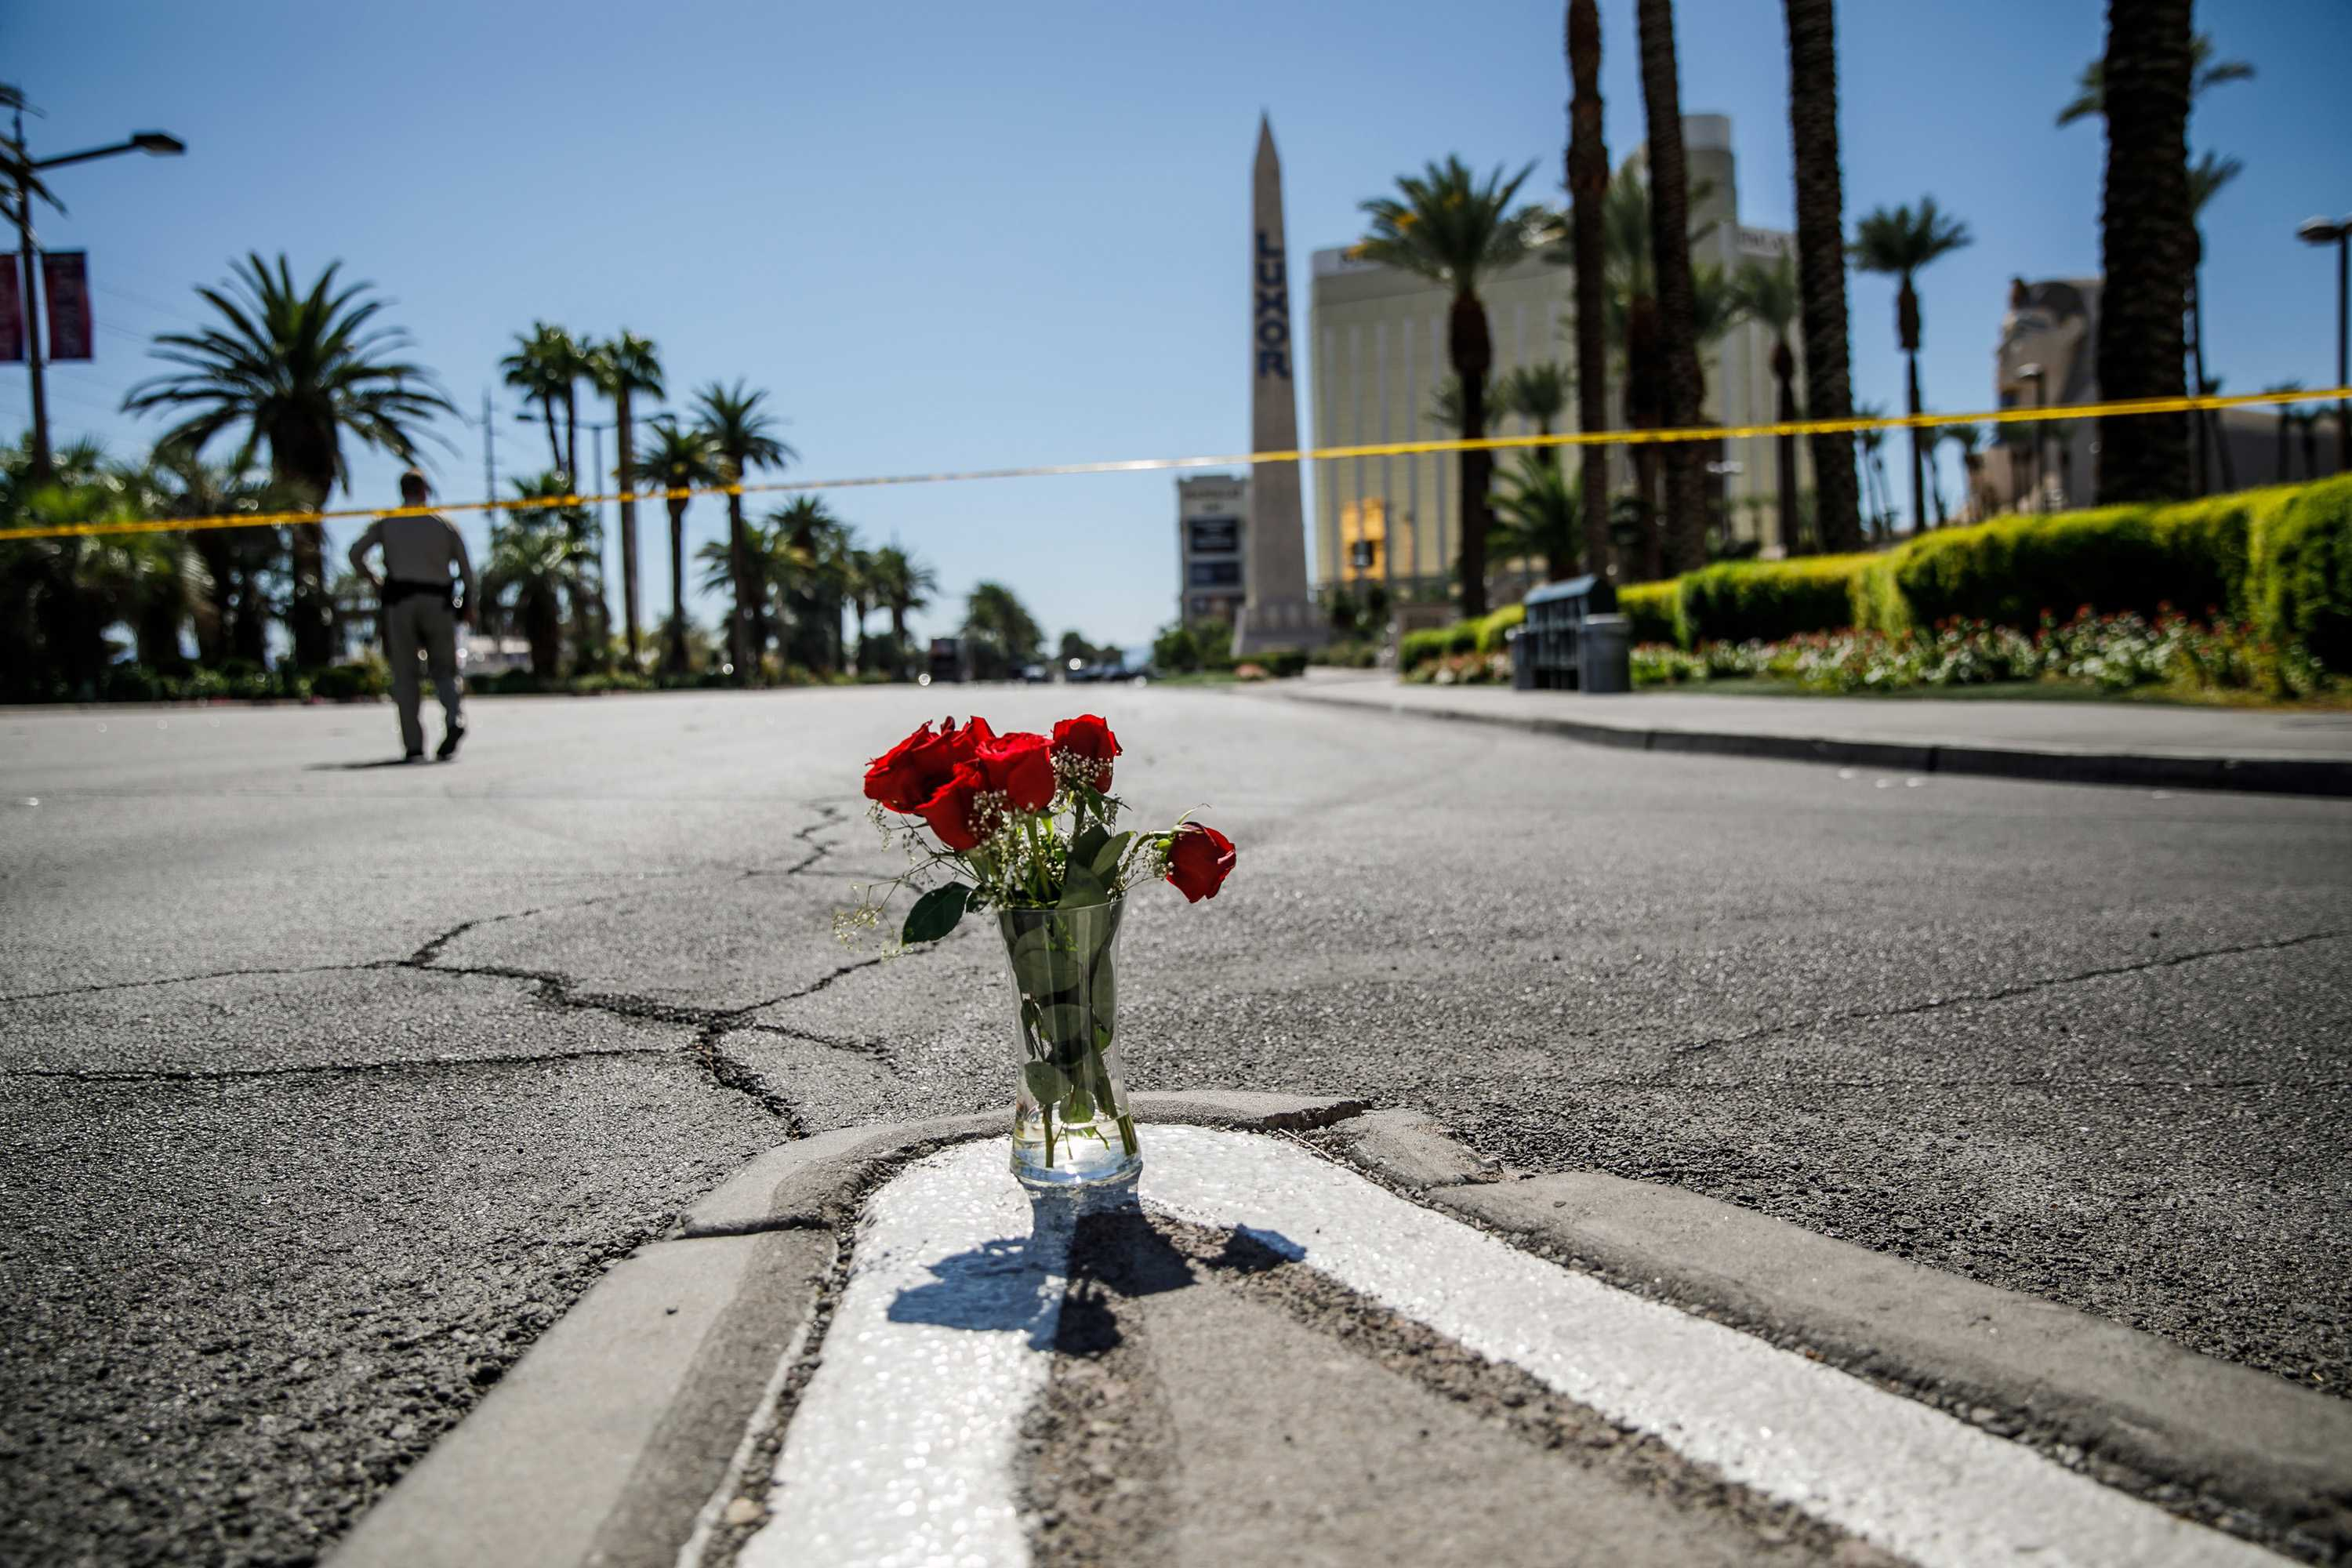 A lone vase of flowers left on Las Vegas Boulevard and Reno Avenue for the victims of the mass shooting on Oct. 2, 2017 in Las Vegas, Nev. (Marcus Yam/Los Angeles Times/TNS)